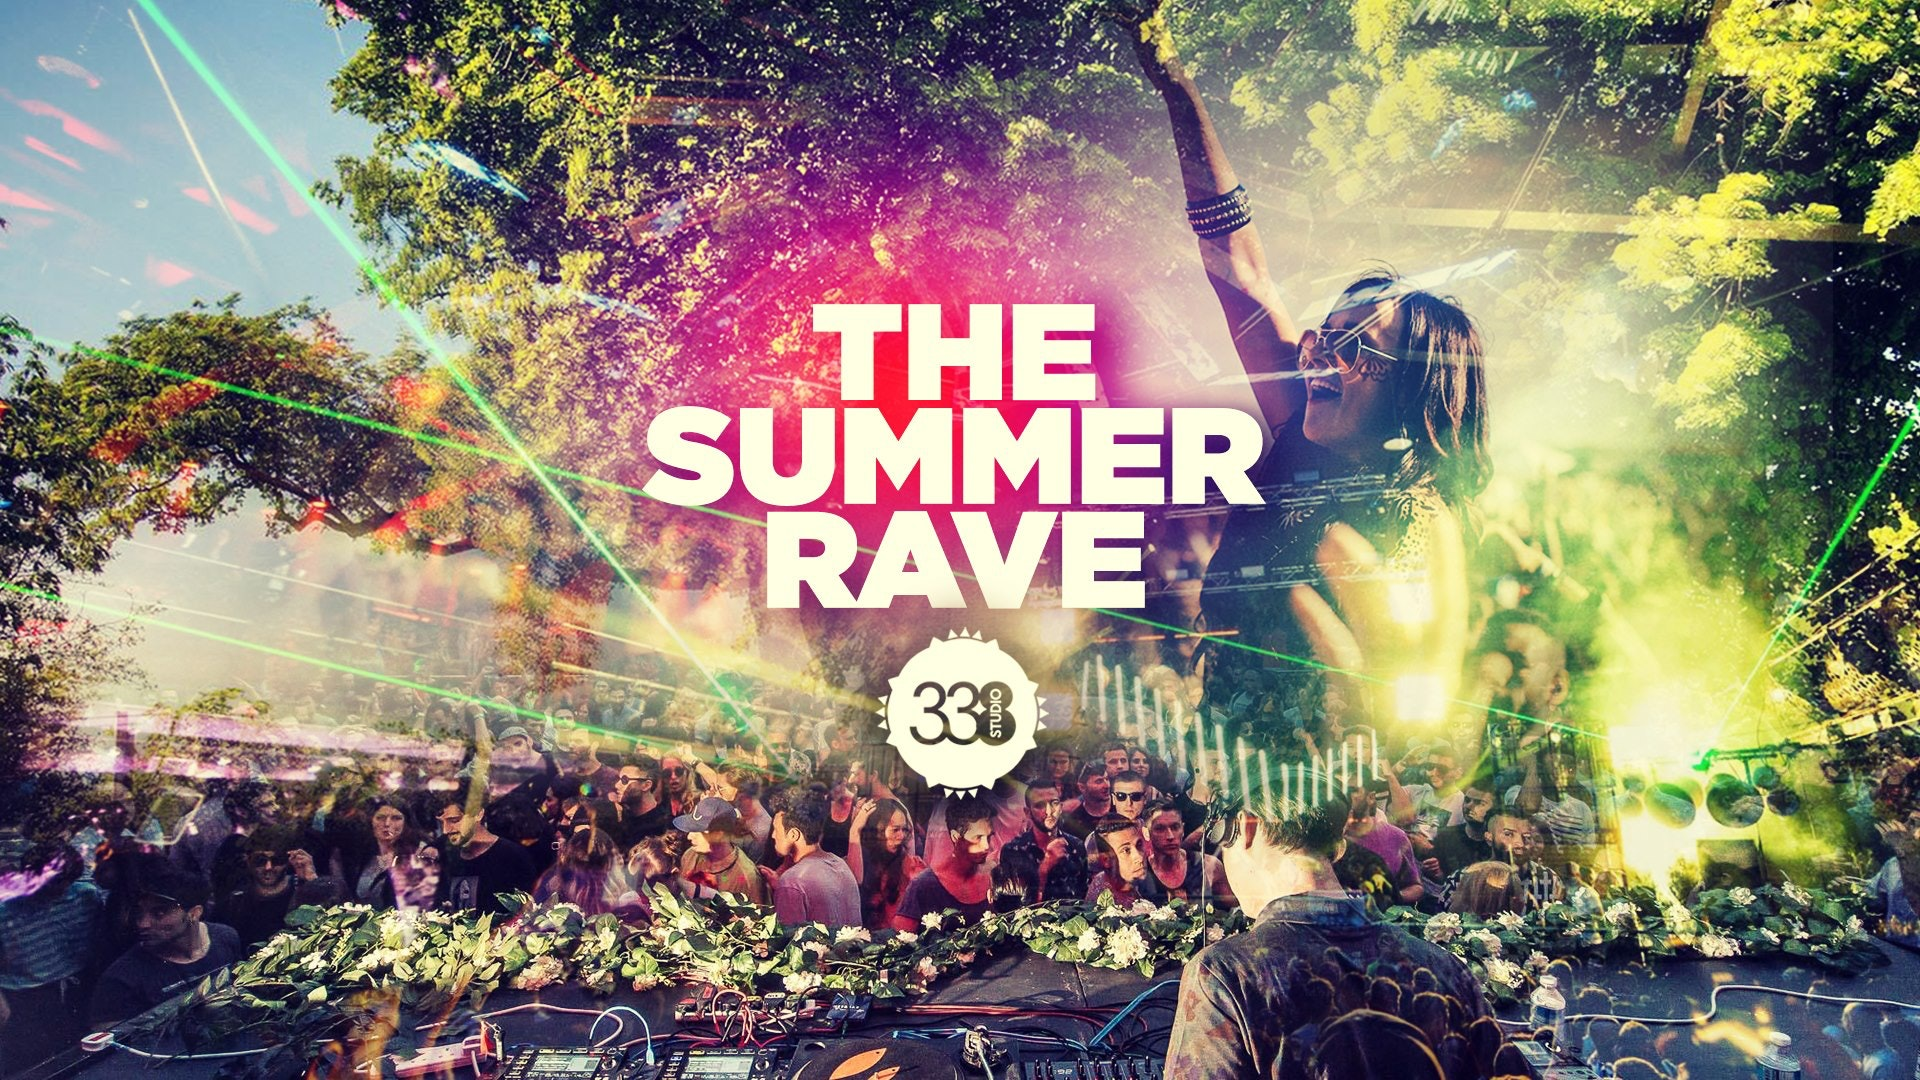 The Summer Rave 2019 at Studio 338 – Friday May 31st 2019